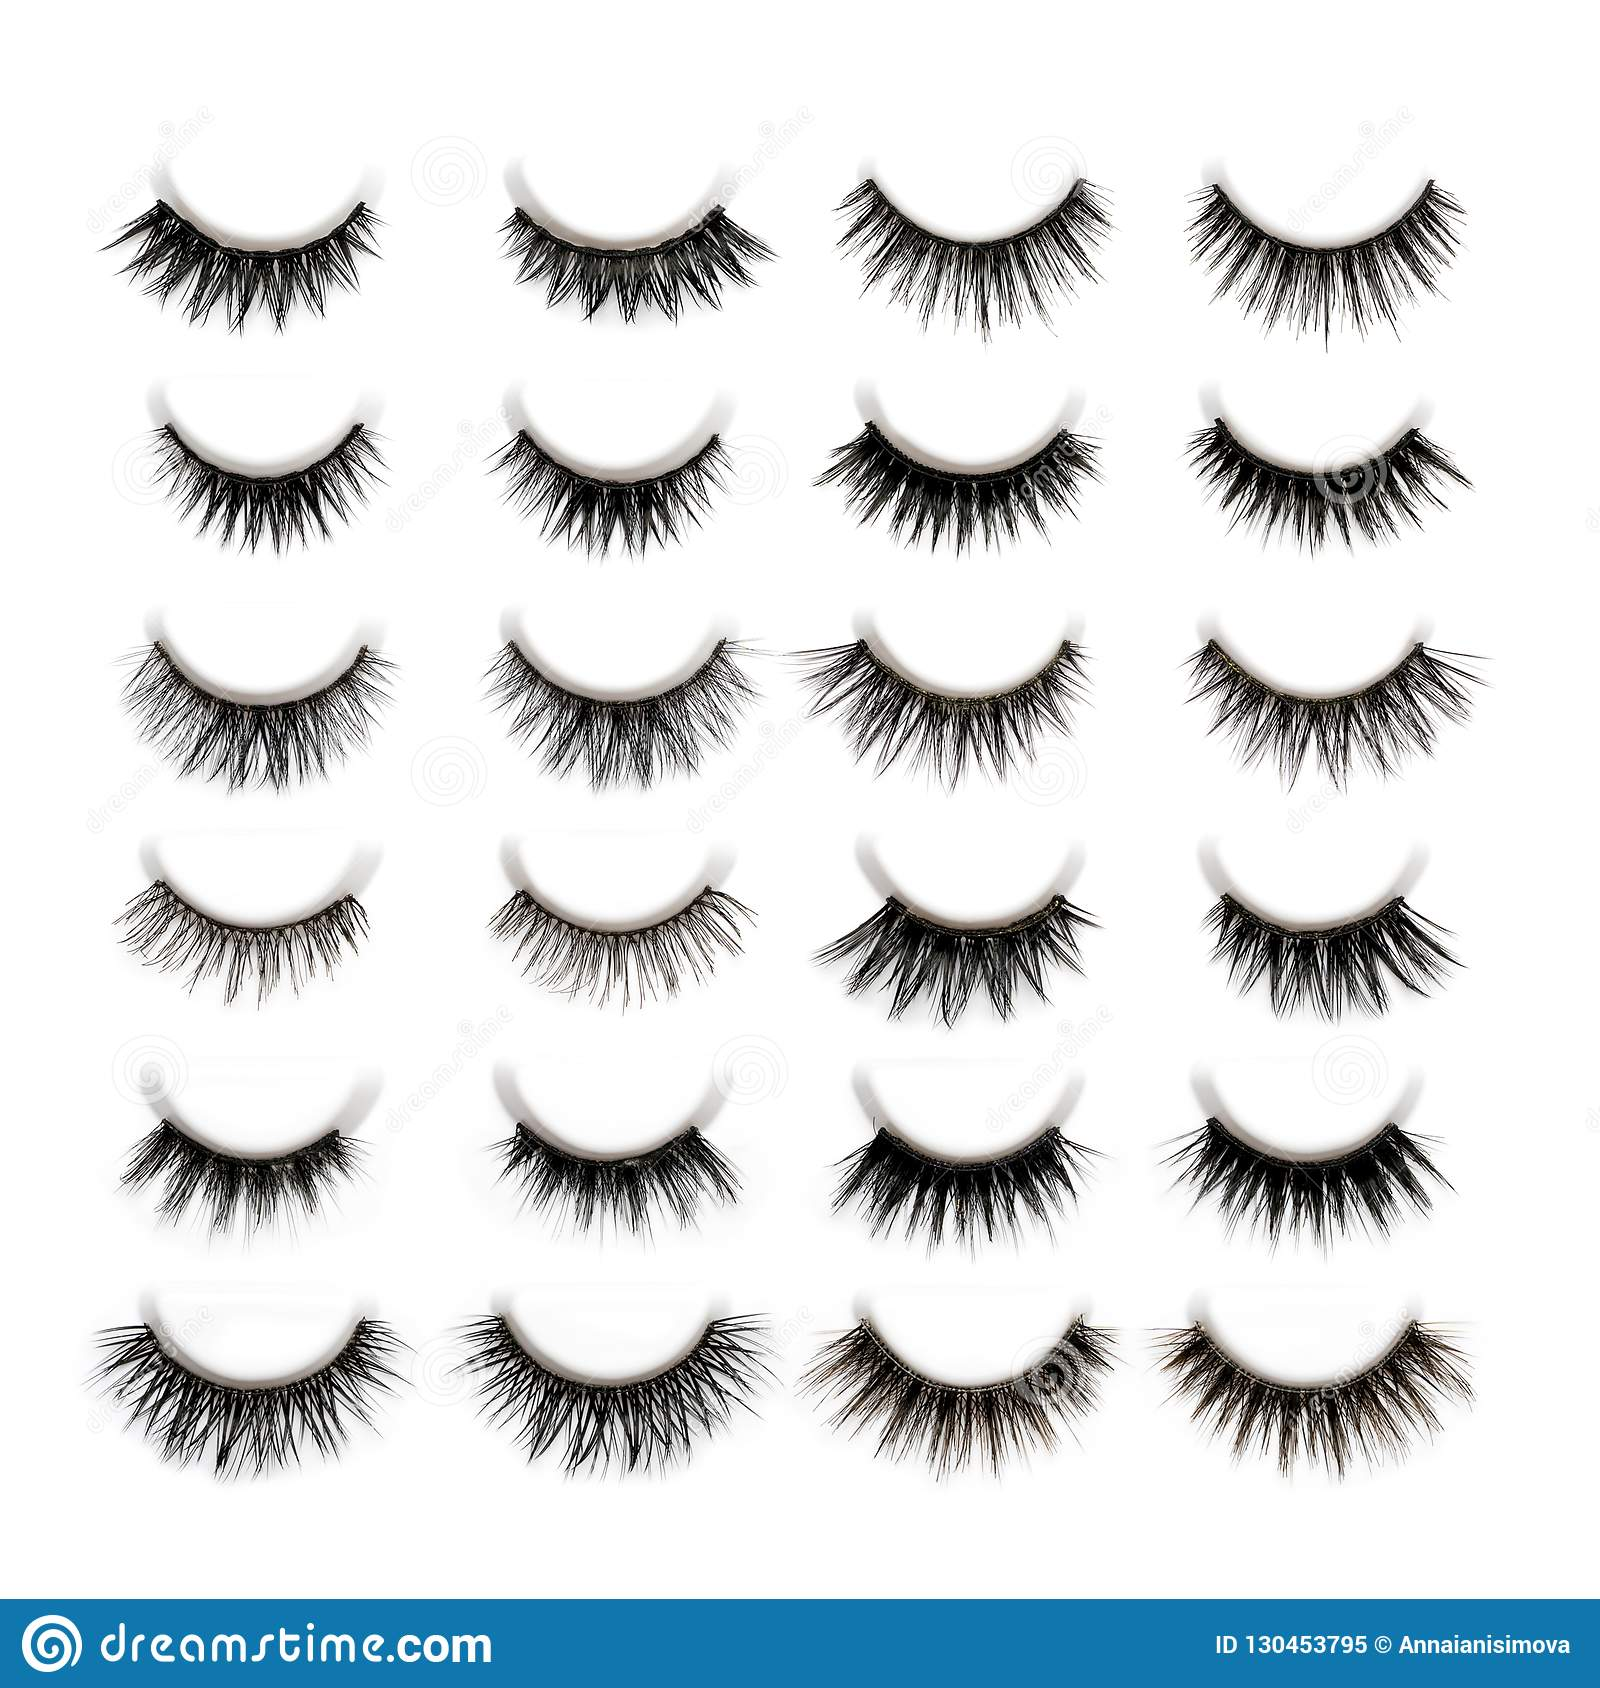 A Set Of 10 Different Types Of Black Long Dramatic False Eyelash